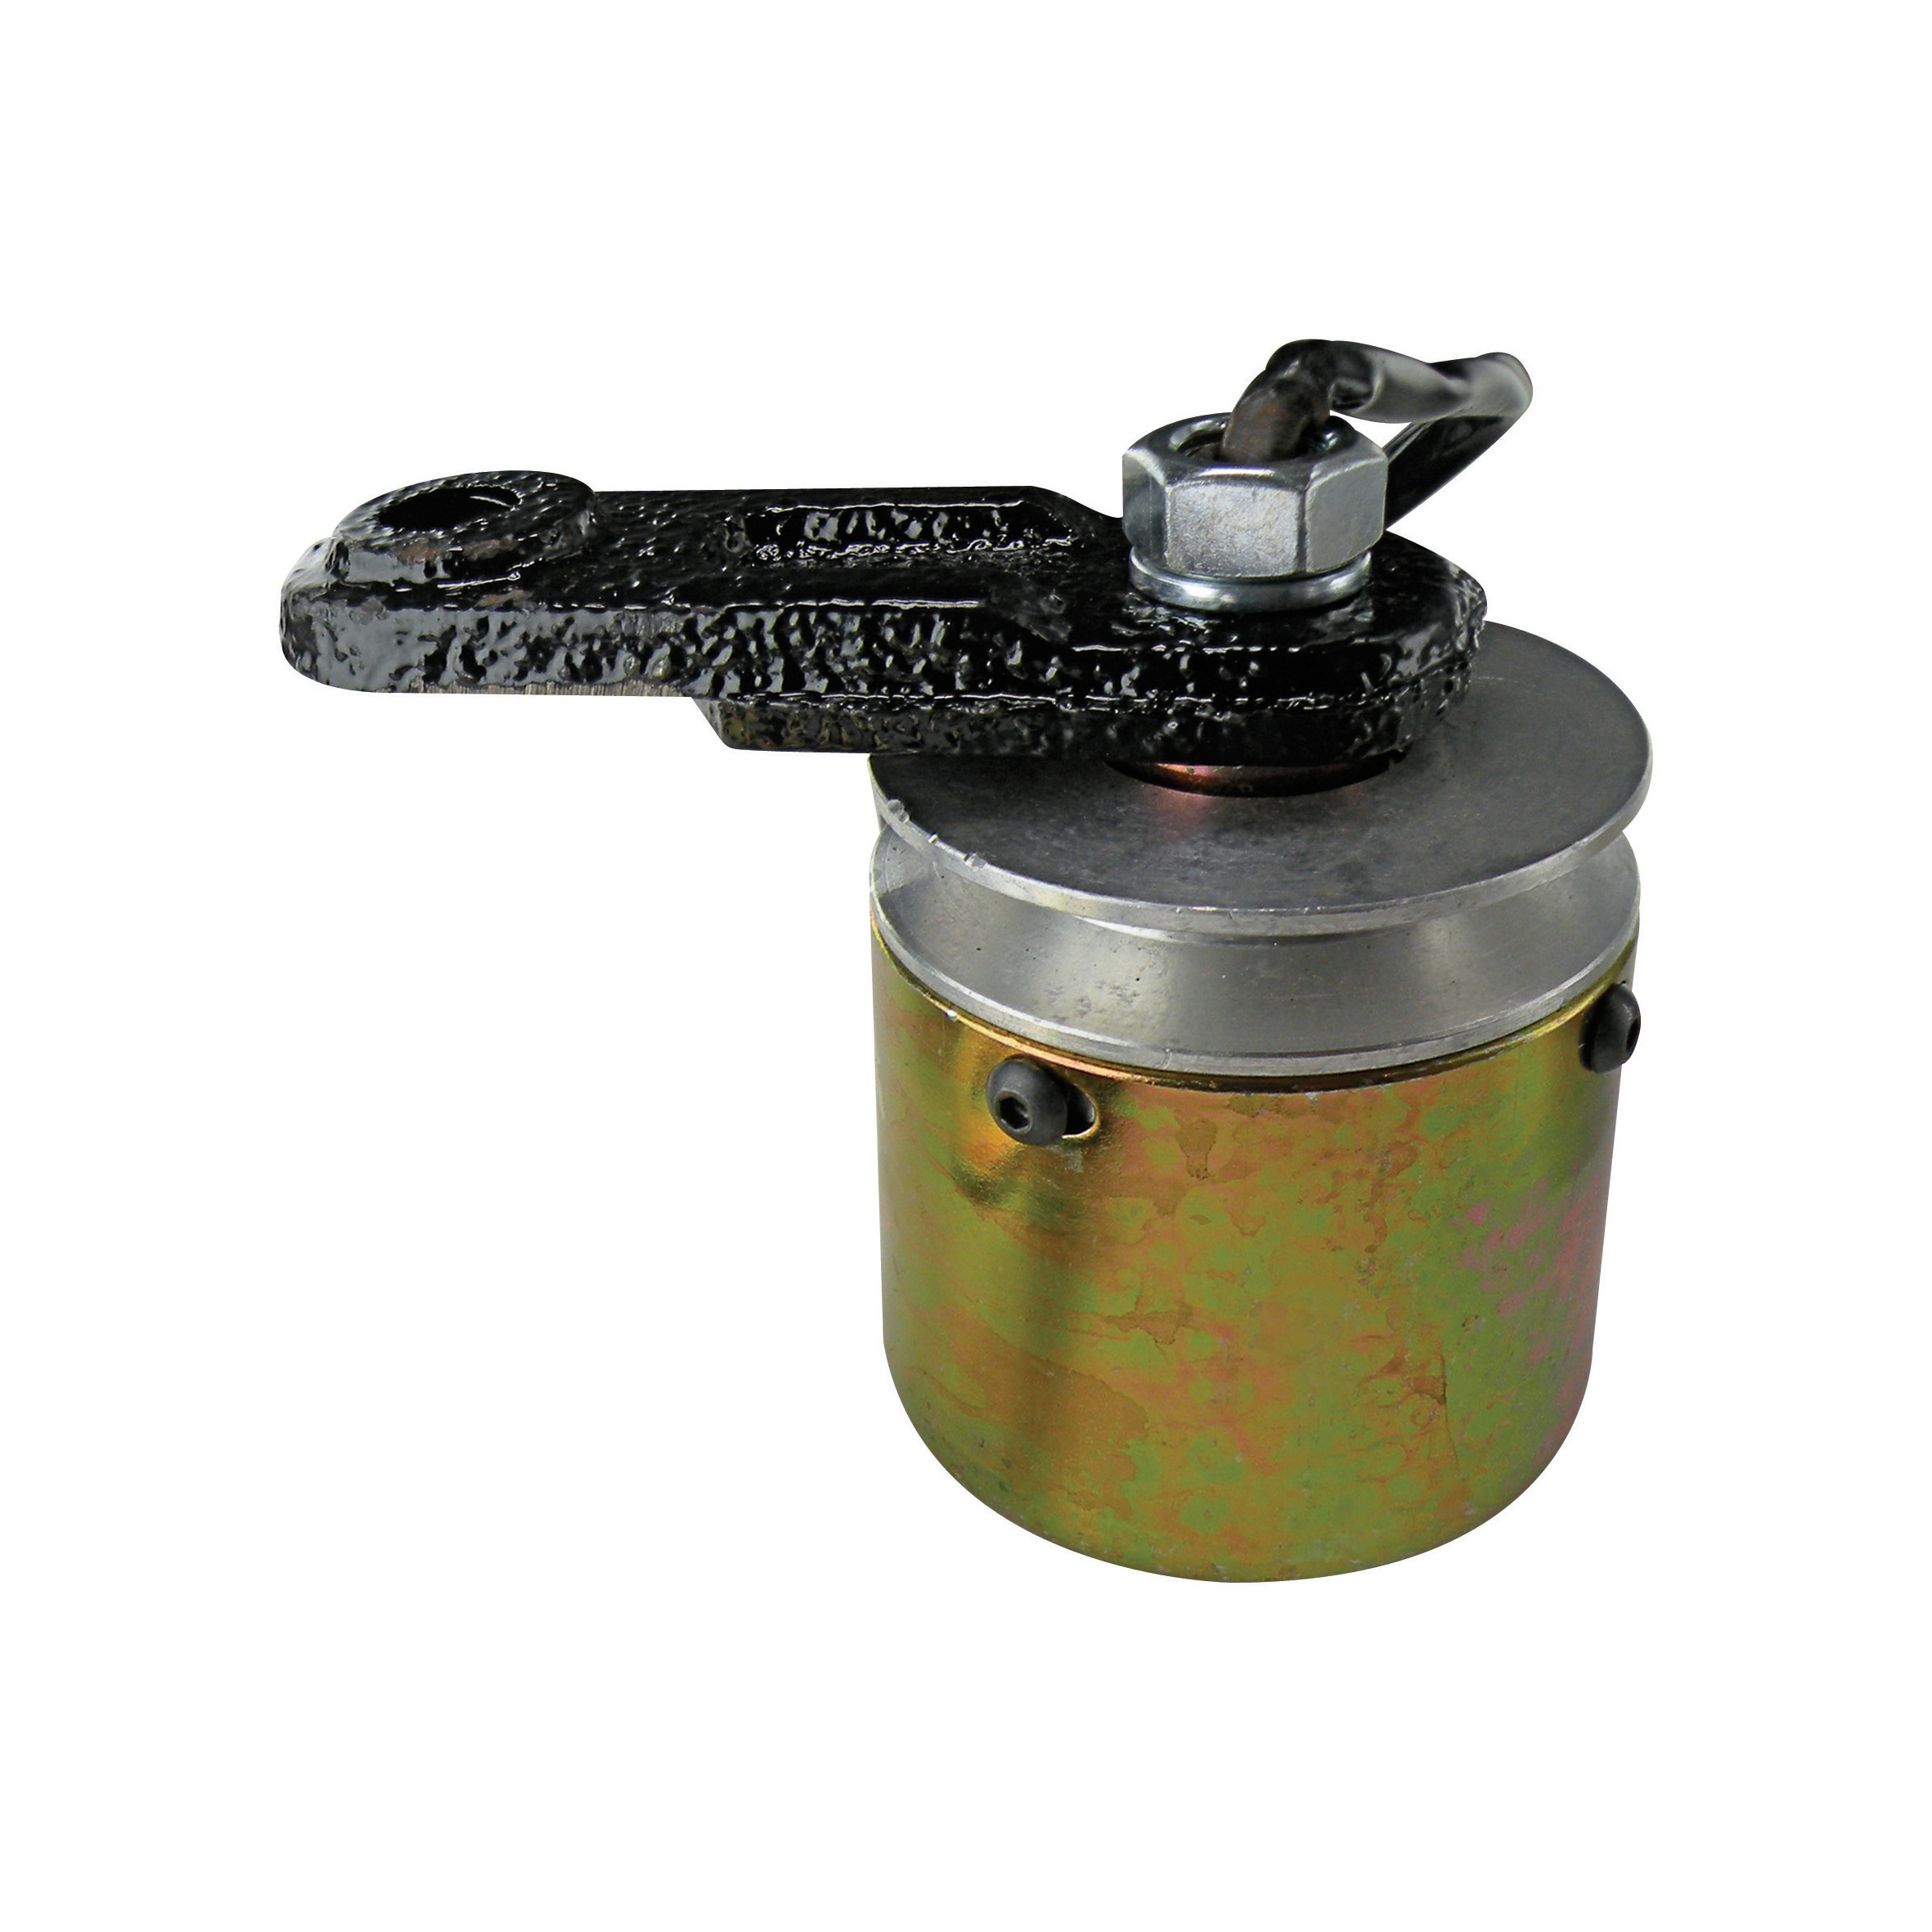 TS-00 / CHANGER PULLY ASSY